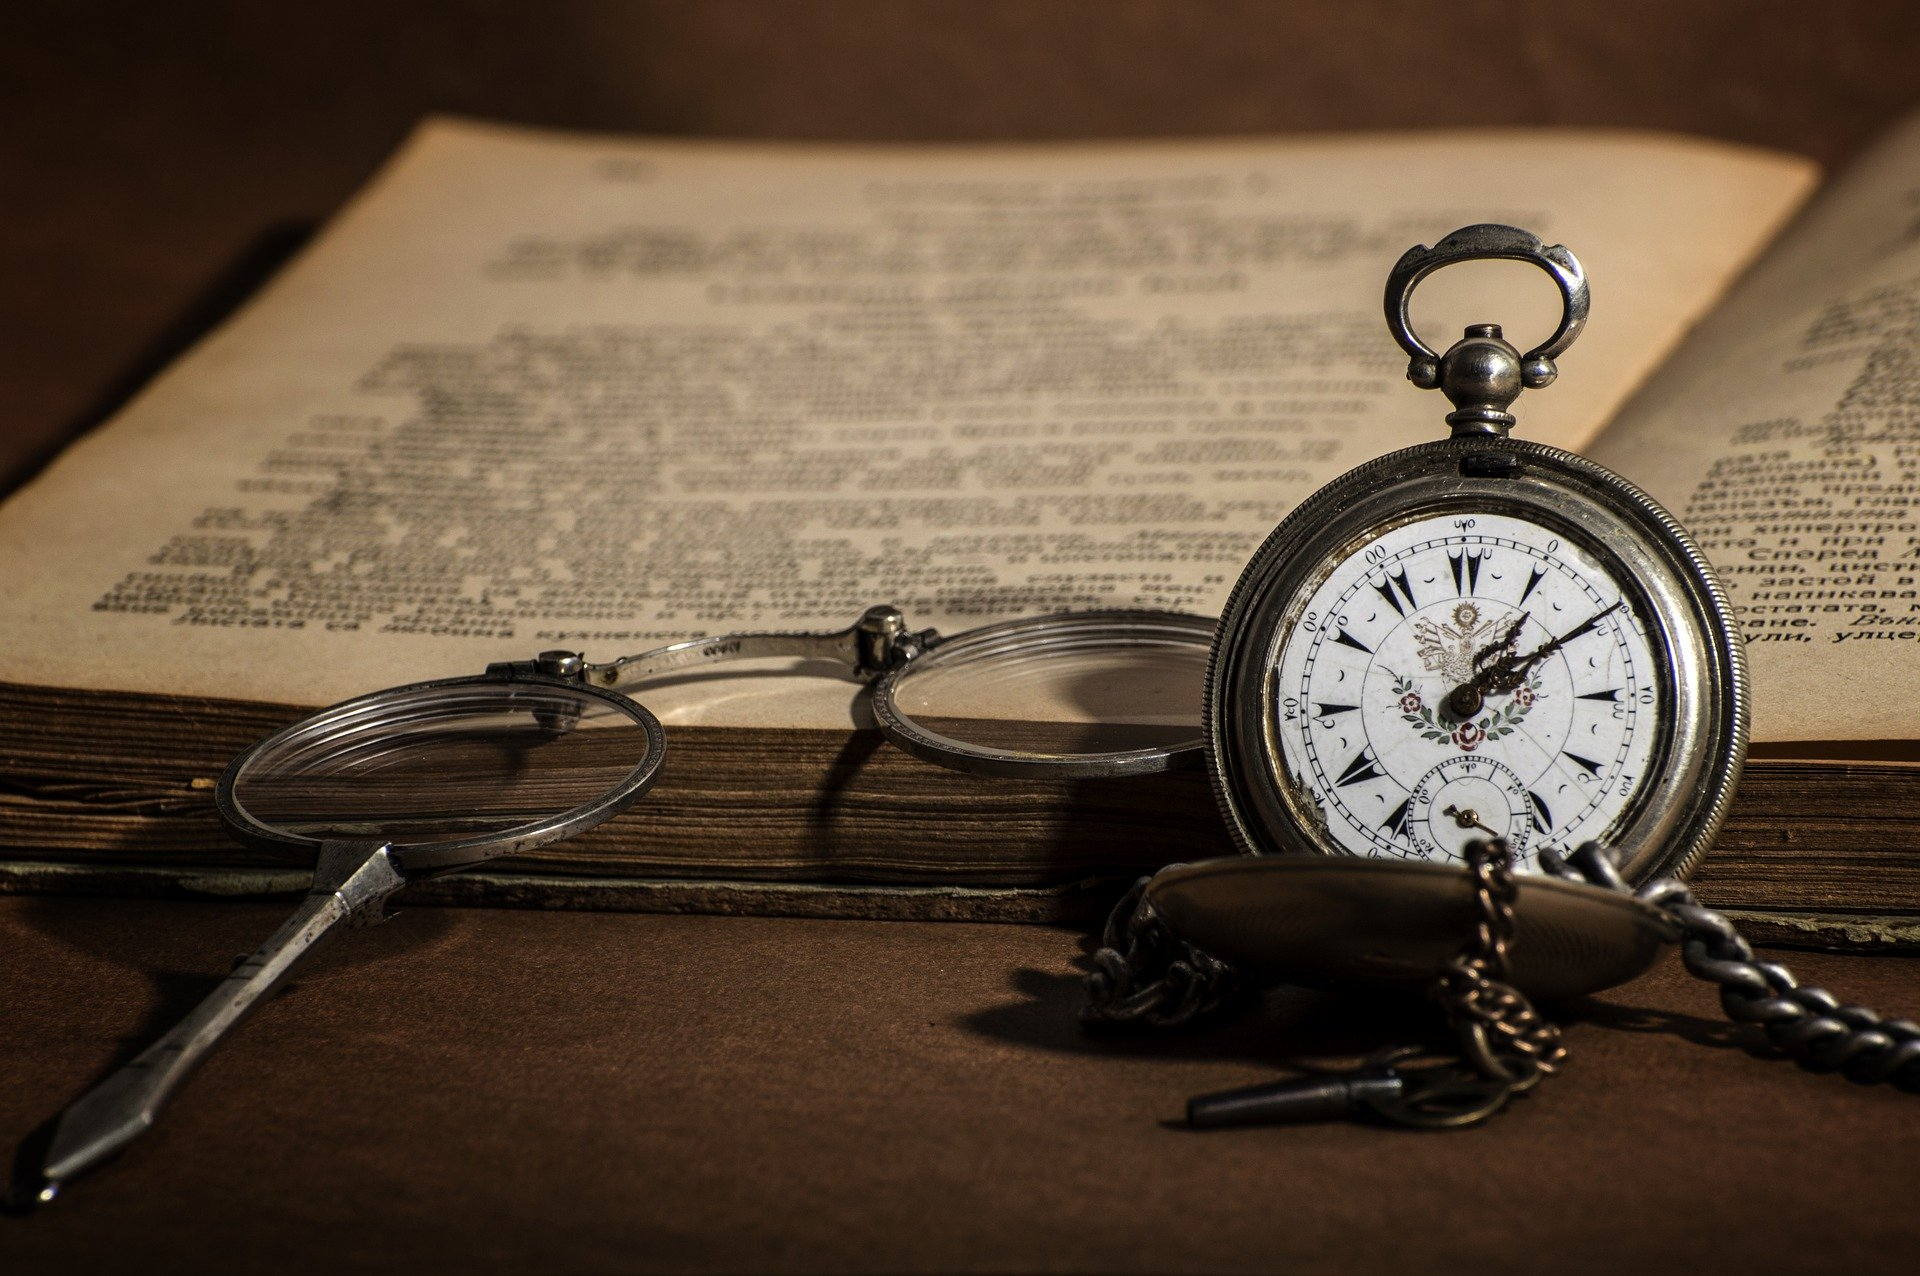 An old watch and book